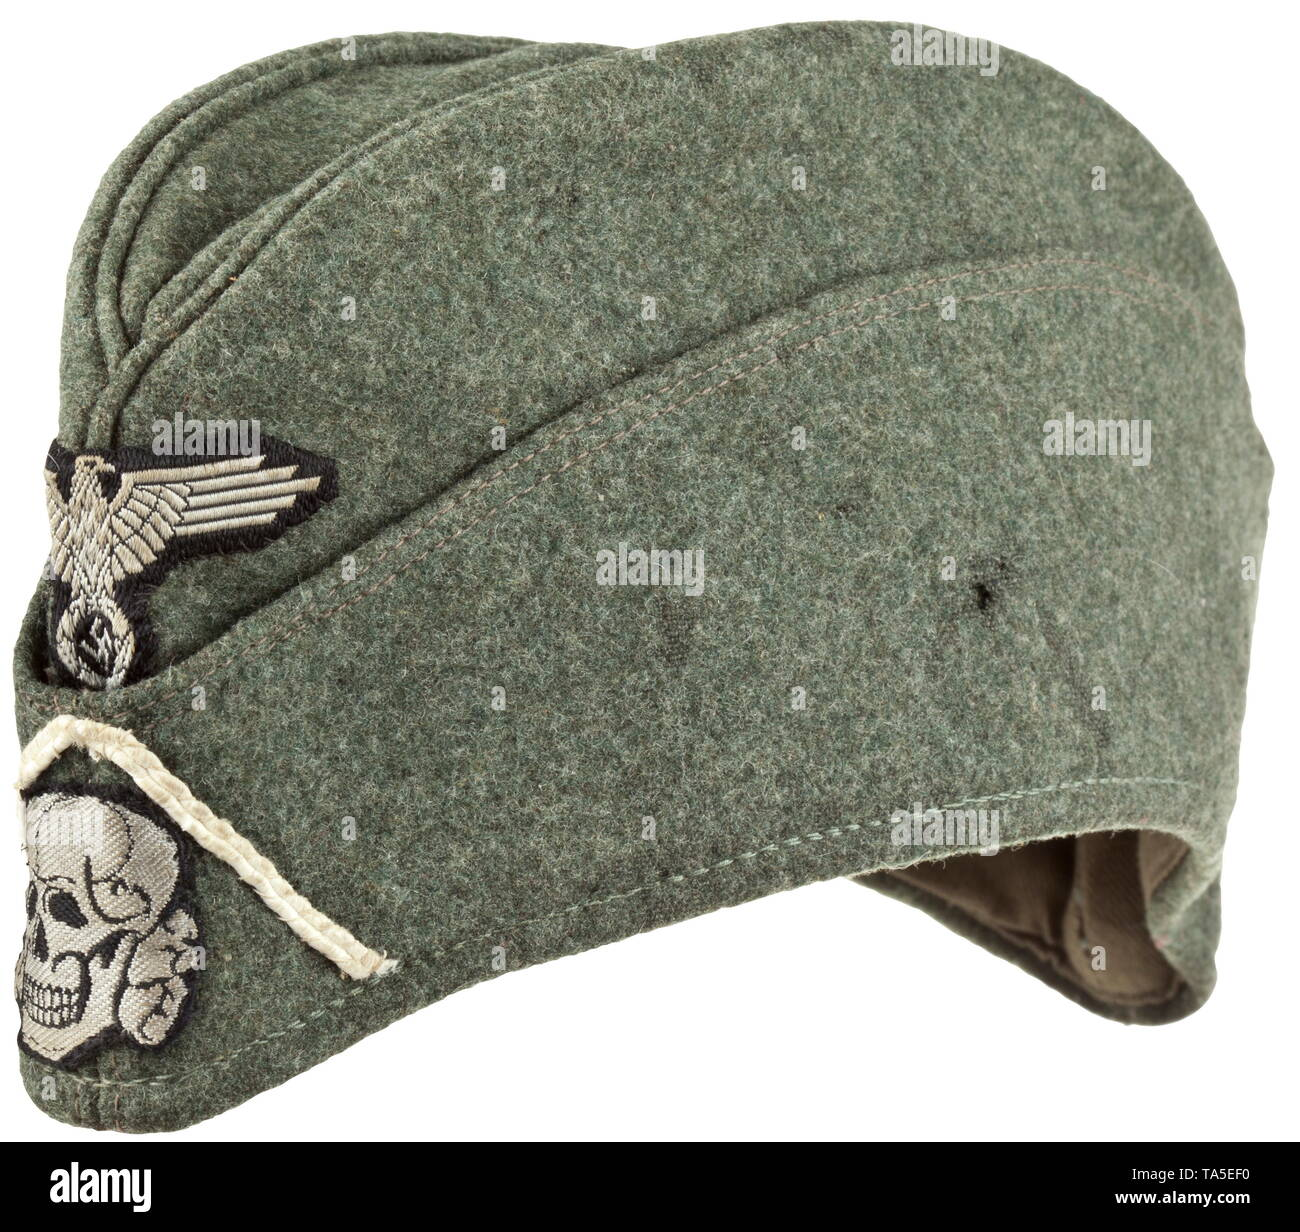 """A garrison cap for enlisted men/NCOs of Waffen-SS infantry units depot piece Field-grey woollen cloth in SS """"boat-shaped"""" cut with stitched-in cap piping in base cloth, brown cotton liner with stamping """"Schmid & Menner"""" and size 59. Hand-stitched, silver-grey on black woven BeVo insignia, white soutache chevron. Unused, with moth traces. historic, historical, 20th century, 1930s, 1940s, Waffen-SS, armed division of the SS, armed service, armed services, NS, National Socialism, Nazism, Third Reich, German Reich, Germany, military, militaria, utensil, piece of equipment, uten, Editorial-Use-Only Stock Photo"""